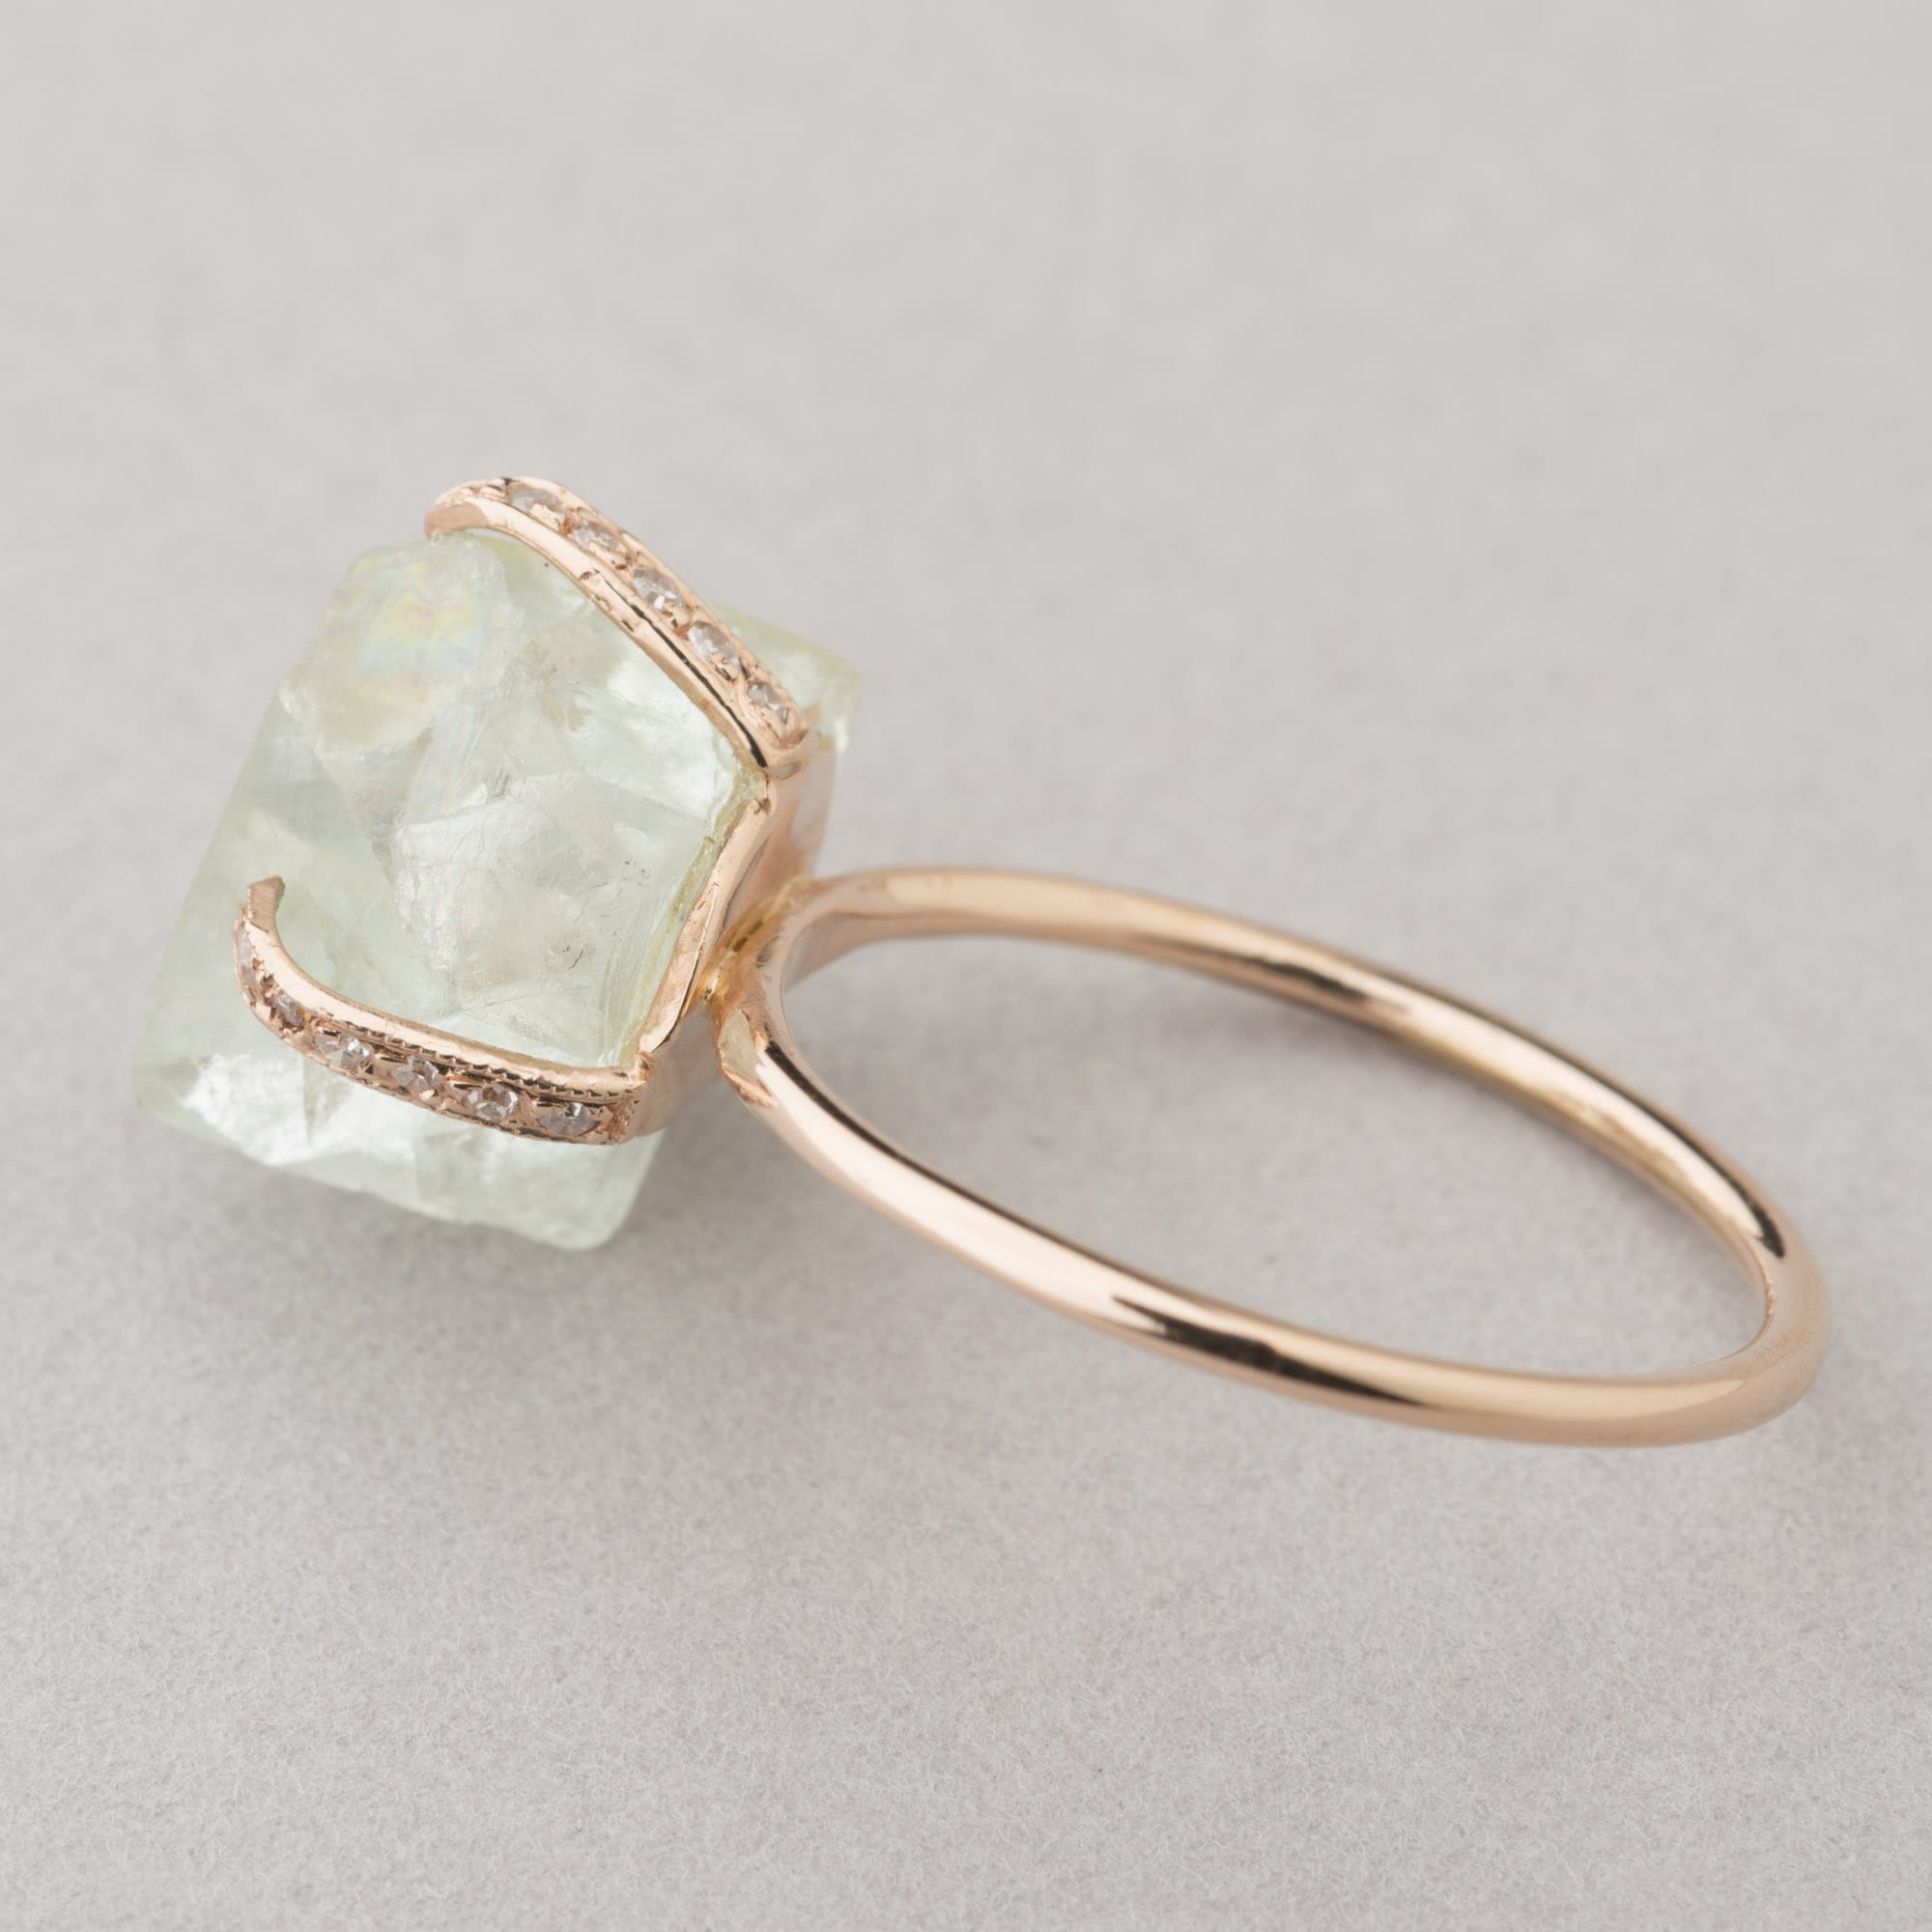 ring cocktail rings engagement aquamarine in white s fluorite gold prouctdetail carat and kunzite